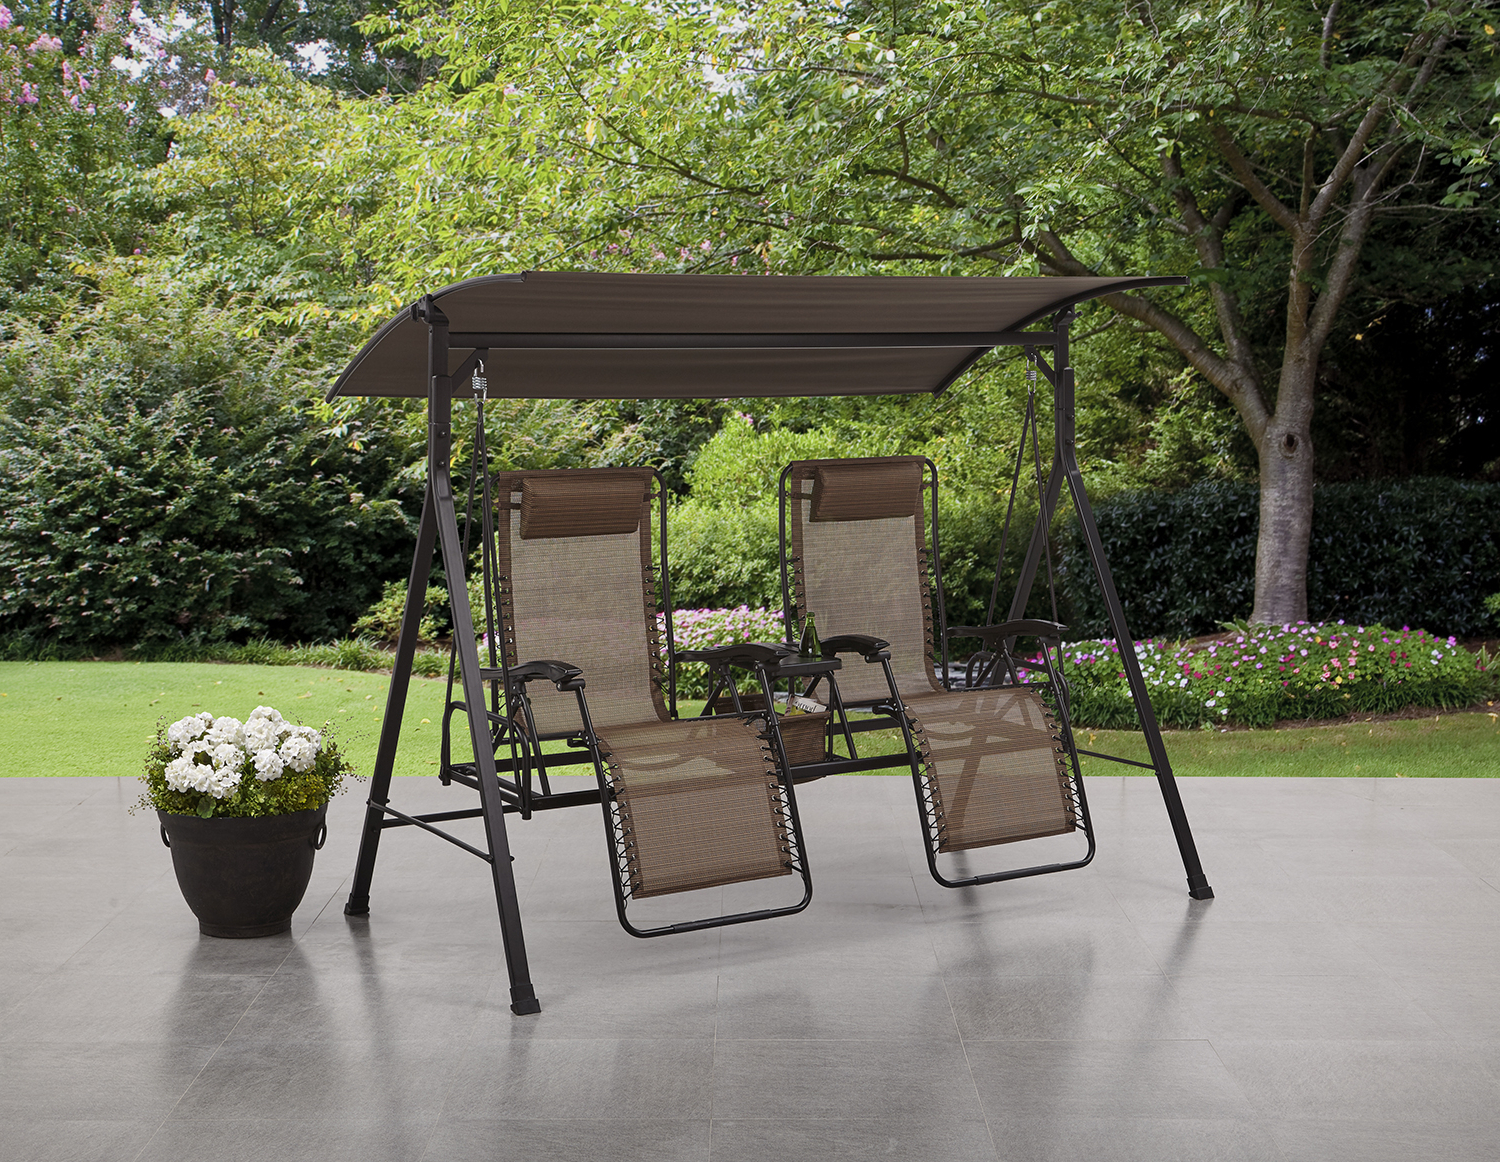 Lamp Outdoor Porch Swings Pertaining To Well Known Mainstays Big And Tall Zero Gravity Outdoor Reclining Swing, Beige – Walmart (View 15 of 25)